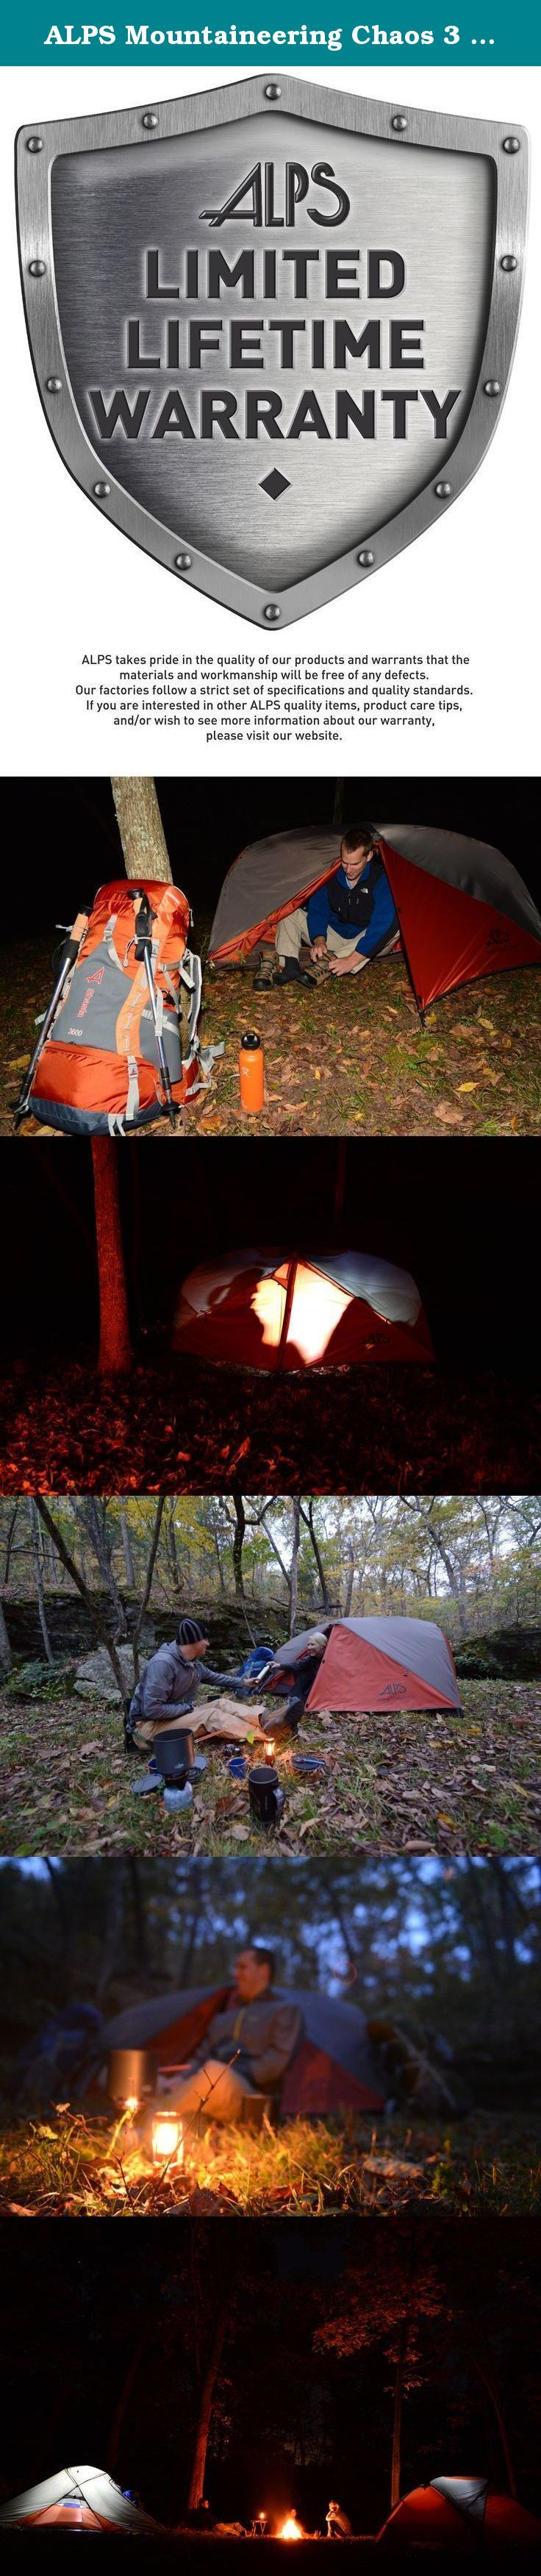 ALPS Mountaineering Chaos 3 Tent 3-Person 3-Season. Whether youu0027re car c&ing with friends or in the backcountry the Eureka Chaos 3 Tent is goingu2026 & ALPS Mountaineering Chaos 3 Tent 3-Person 3-Season. Whether youu0027re ...